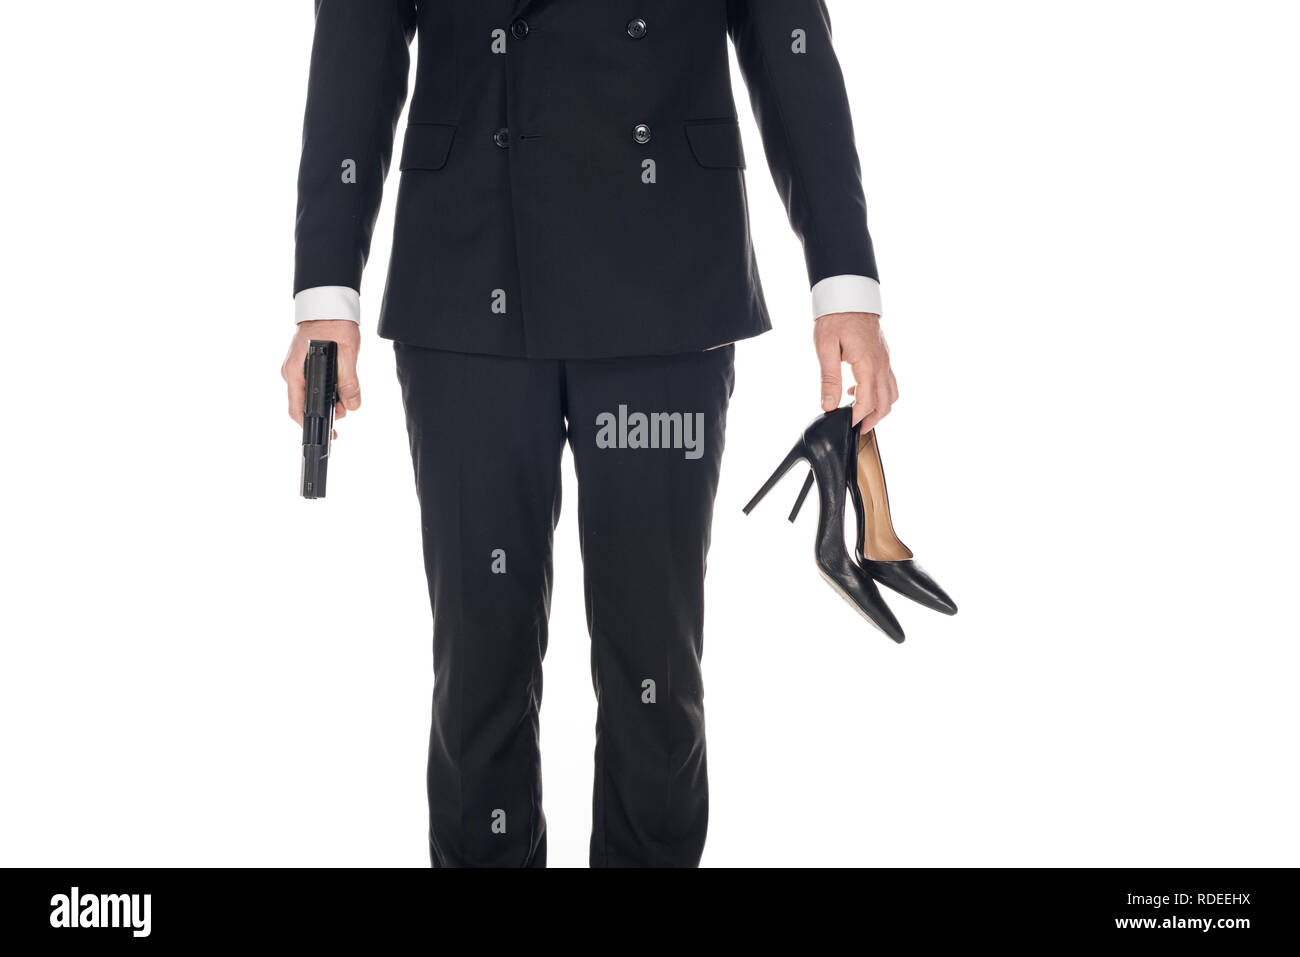 cropped view of killer in black suit holding handgun and high heels, isolated on white - Stock Image